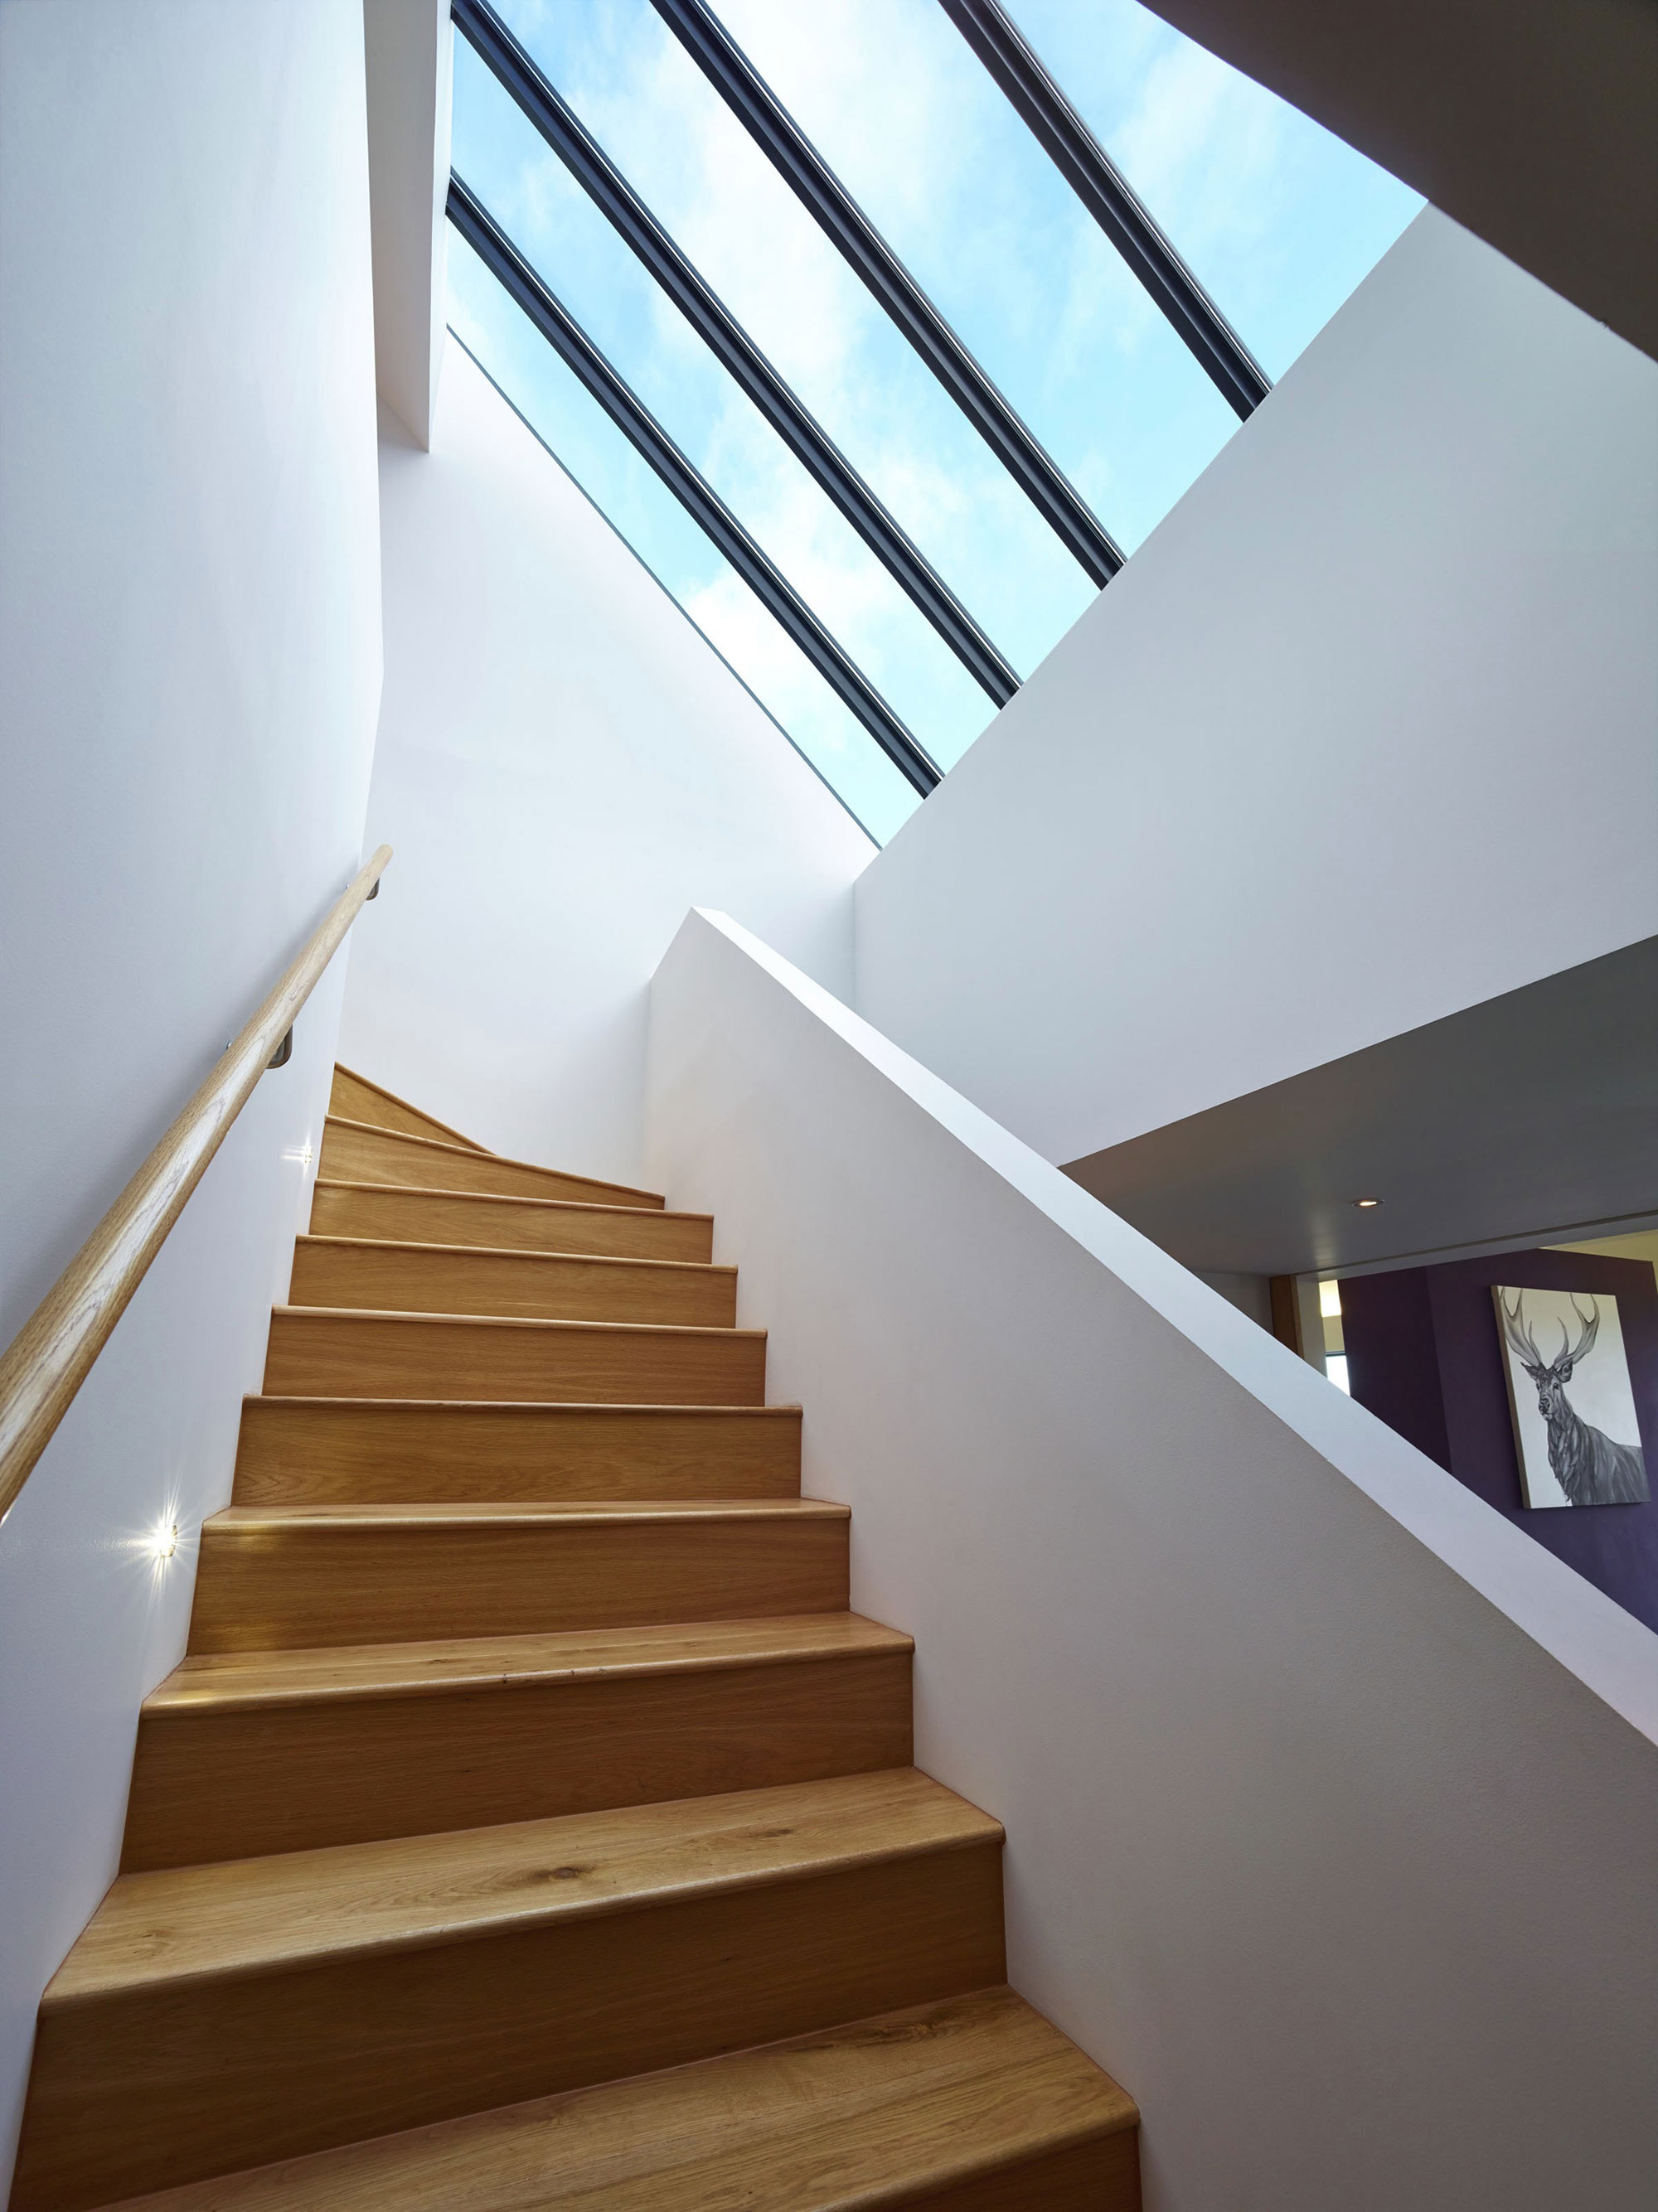 House-in-Colbost-staircase